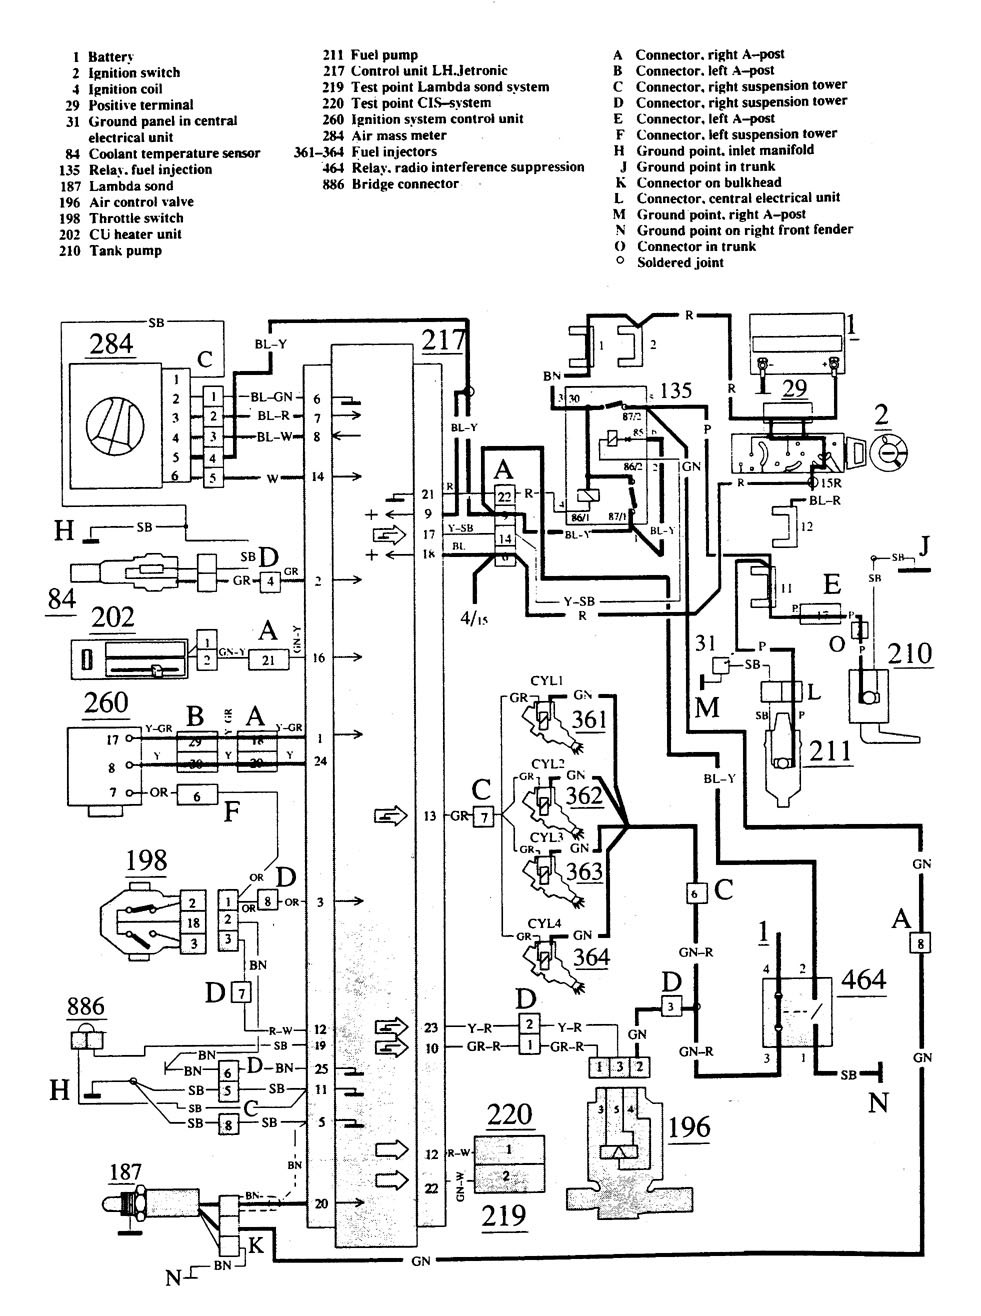 96 Suzuki Sidekick Fuse Box Diagram Daily Update Wiring 1988 Pontiac Fiero Auto